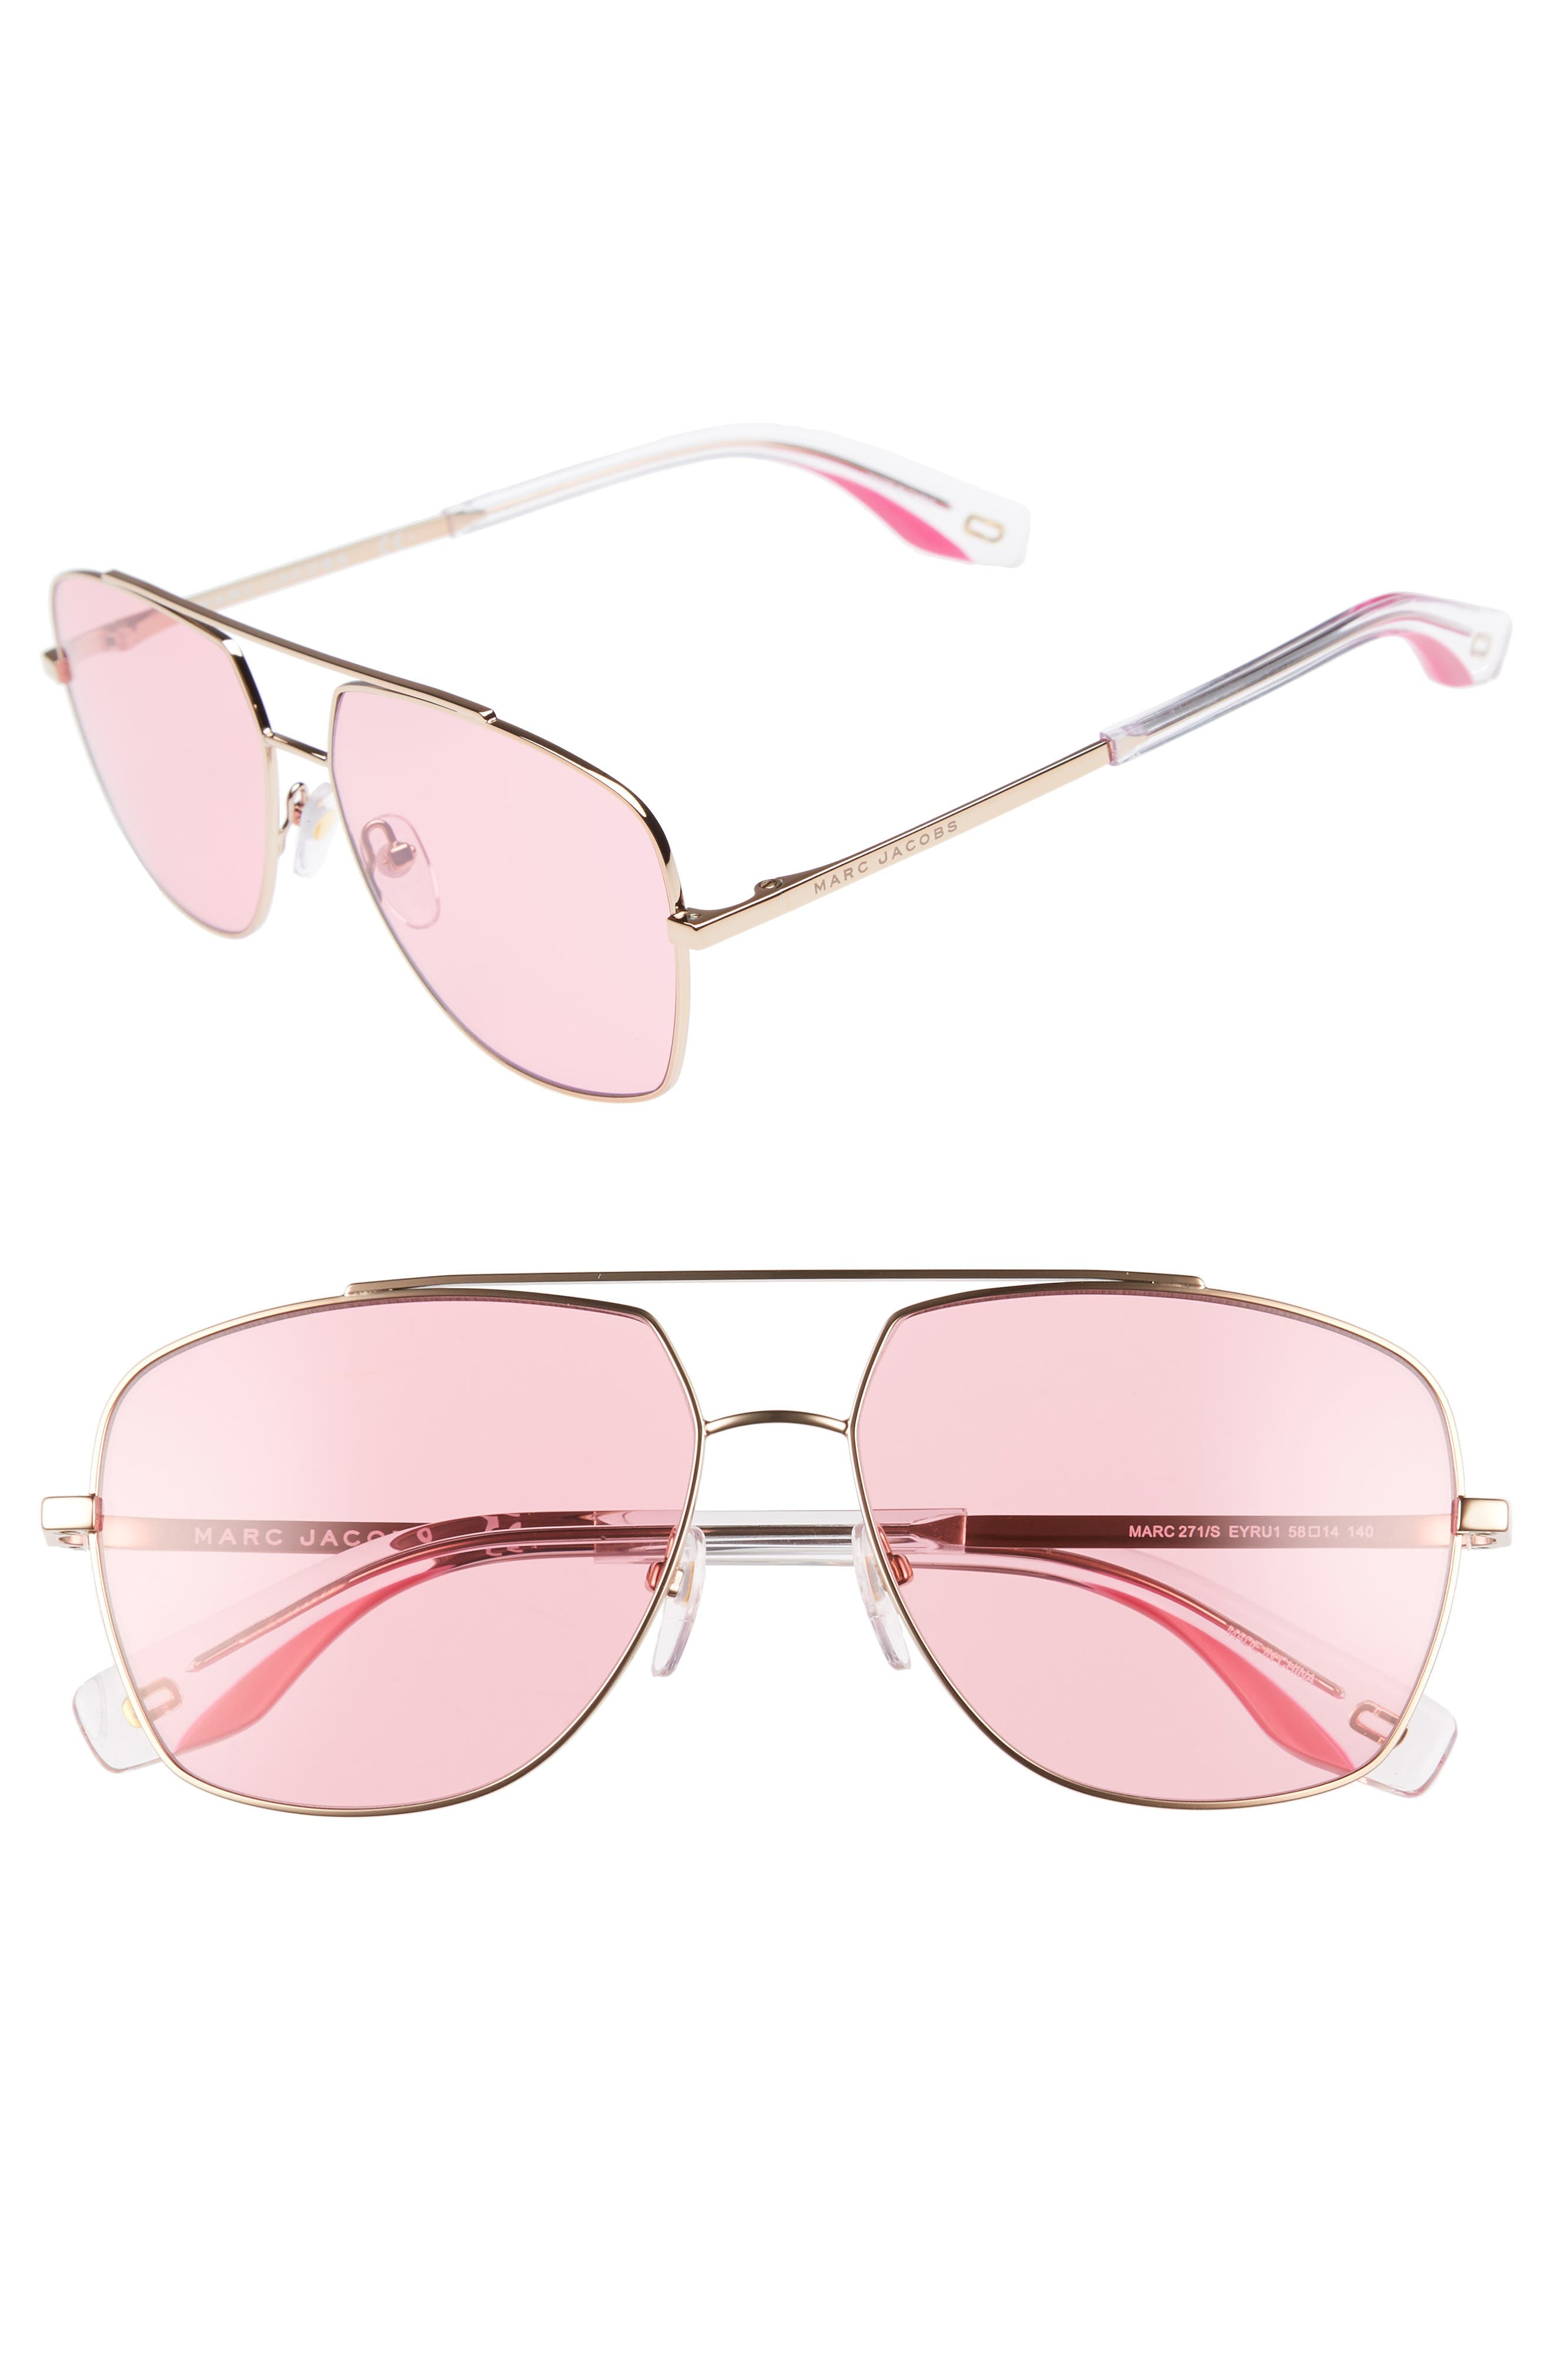 Women'S Brow Bar Aviator Sunglasses, 58Mm in Gold/ Pink